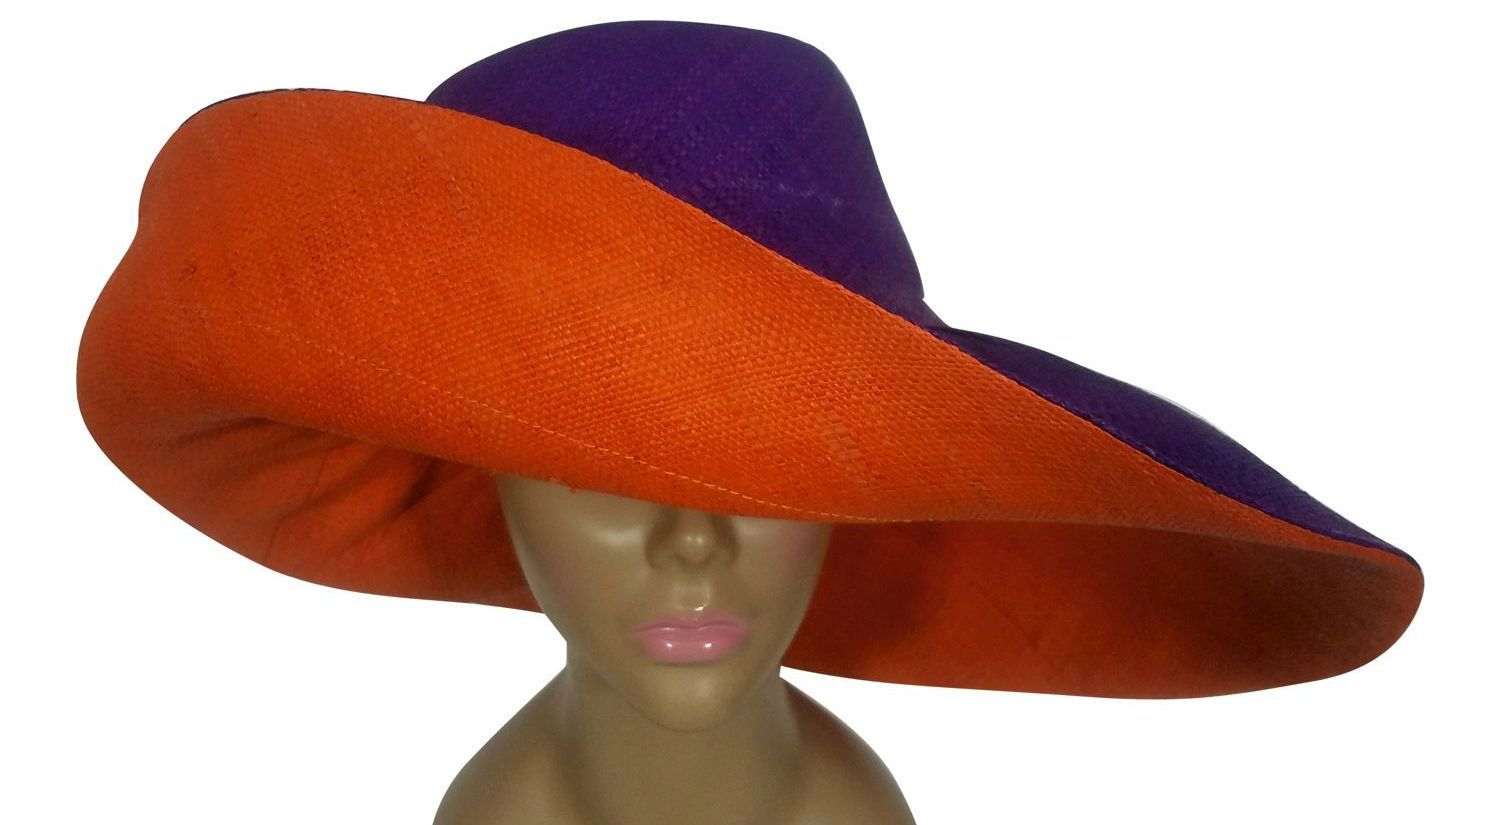 Atieno: Authentic African Handwoven Purple and Orange Madagascar Big Brim Raffia Sun Hat